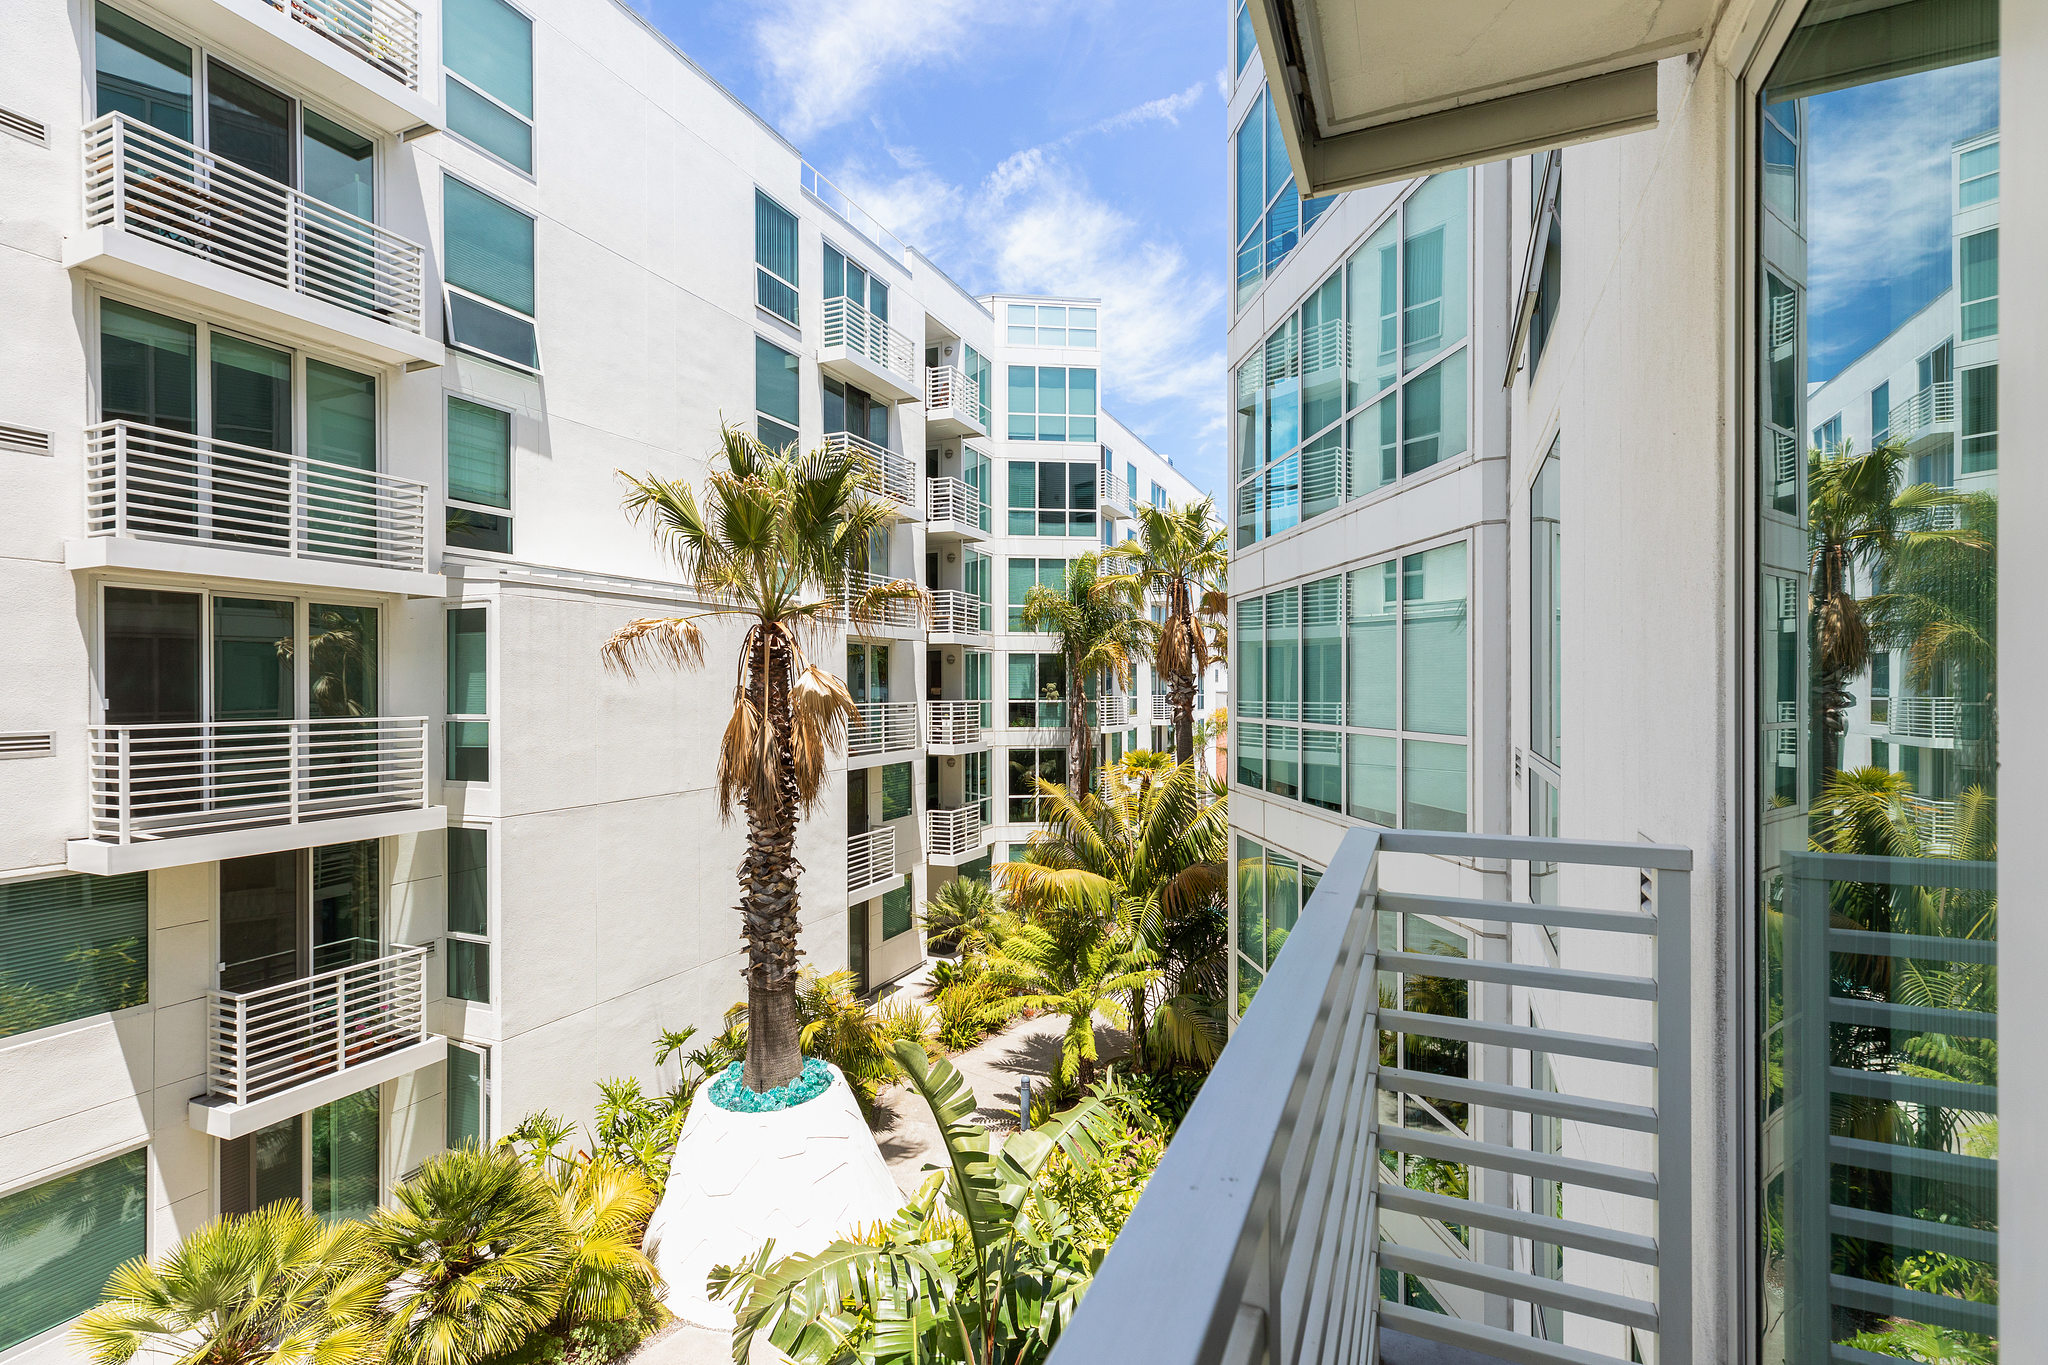 SF Realty - outside view with palm trees